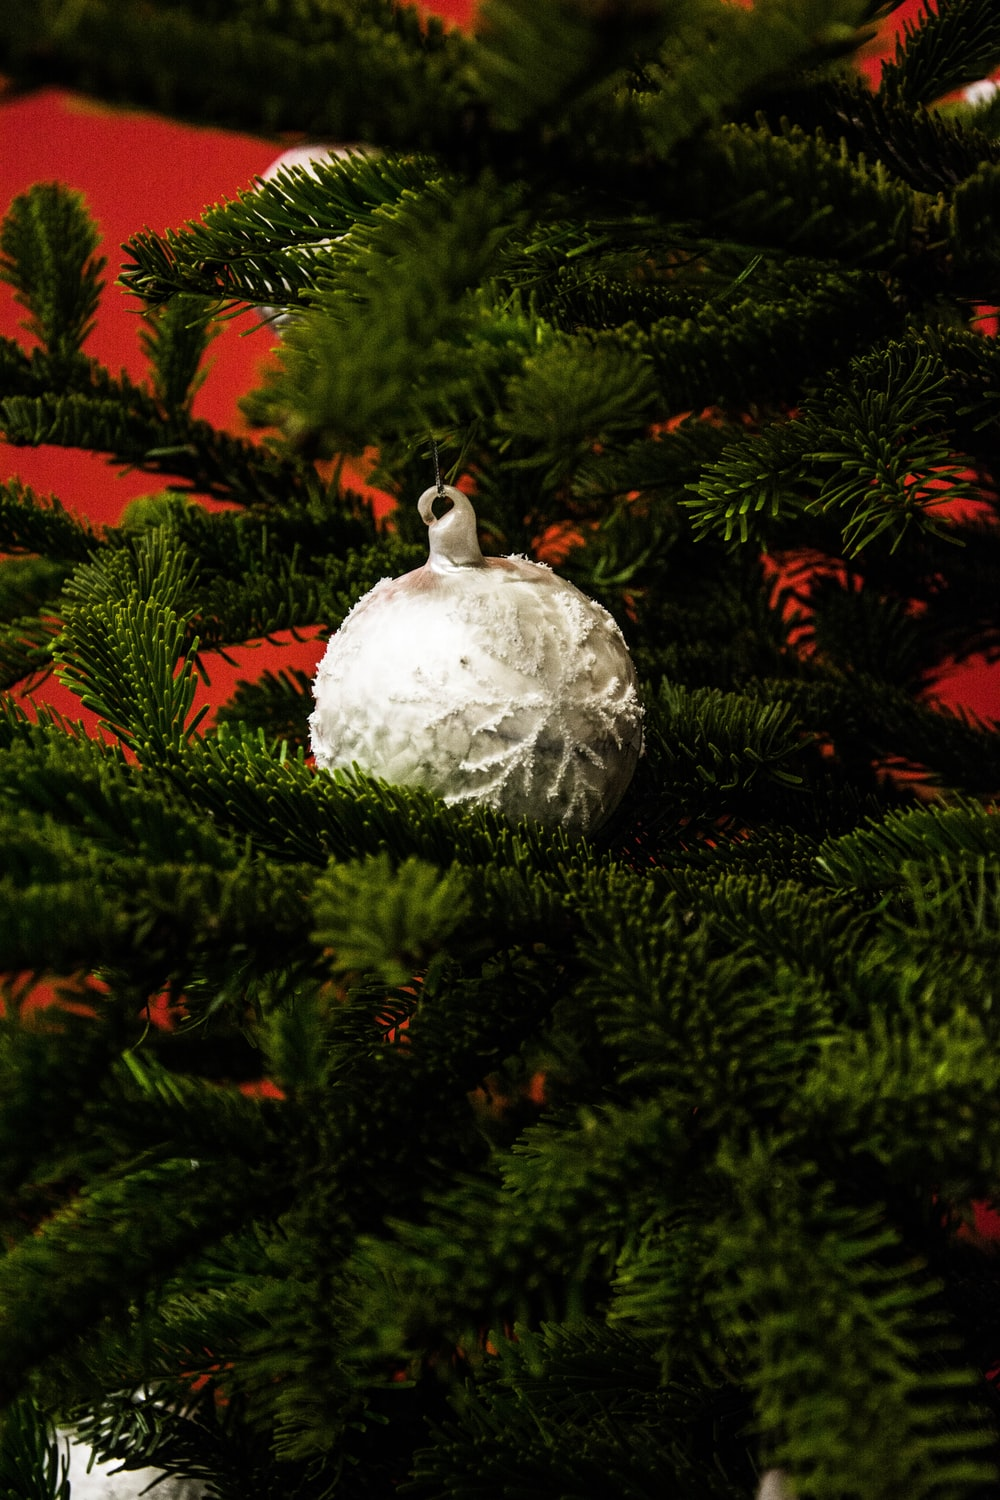 white bauble hanging on green tree